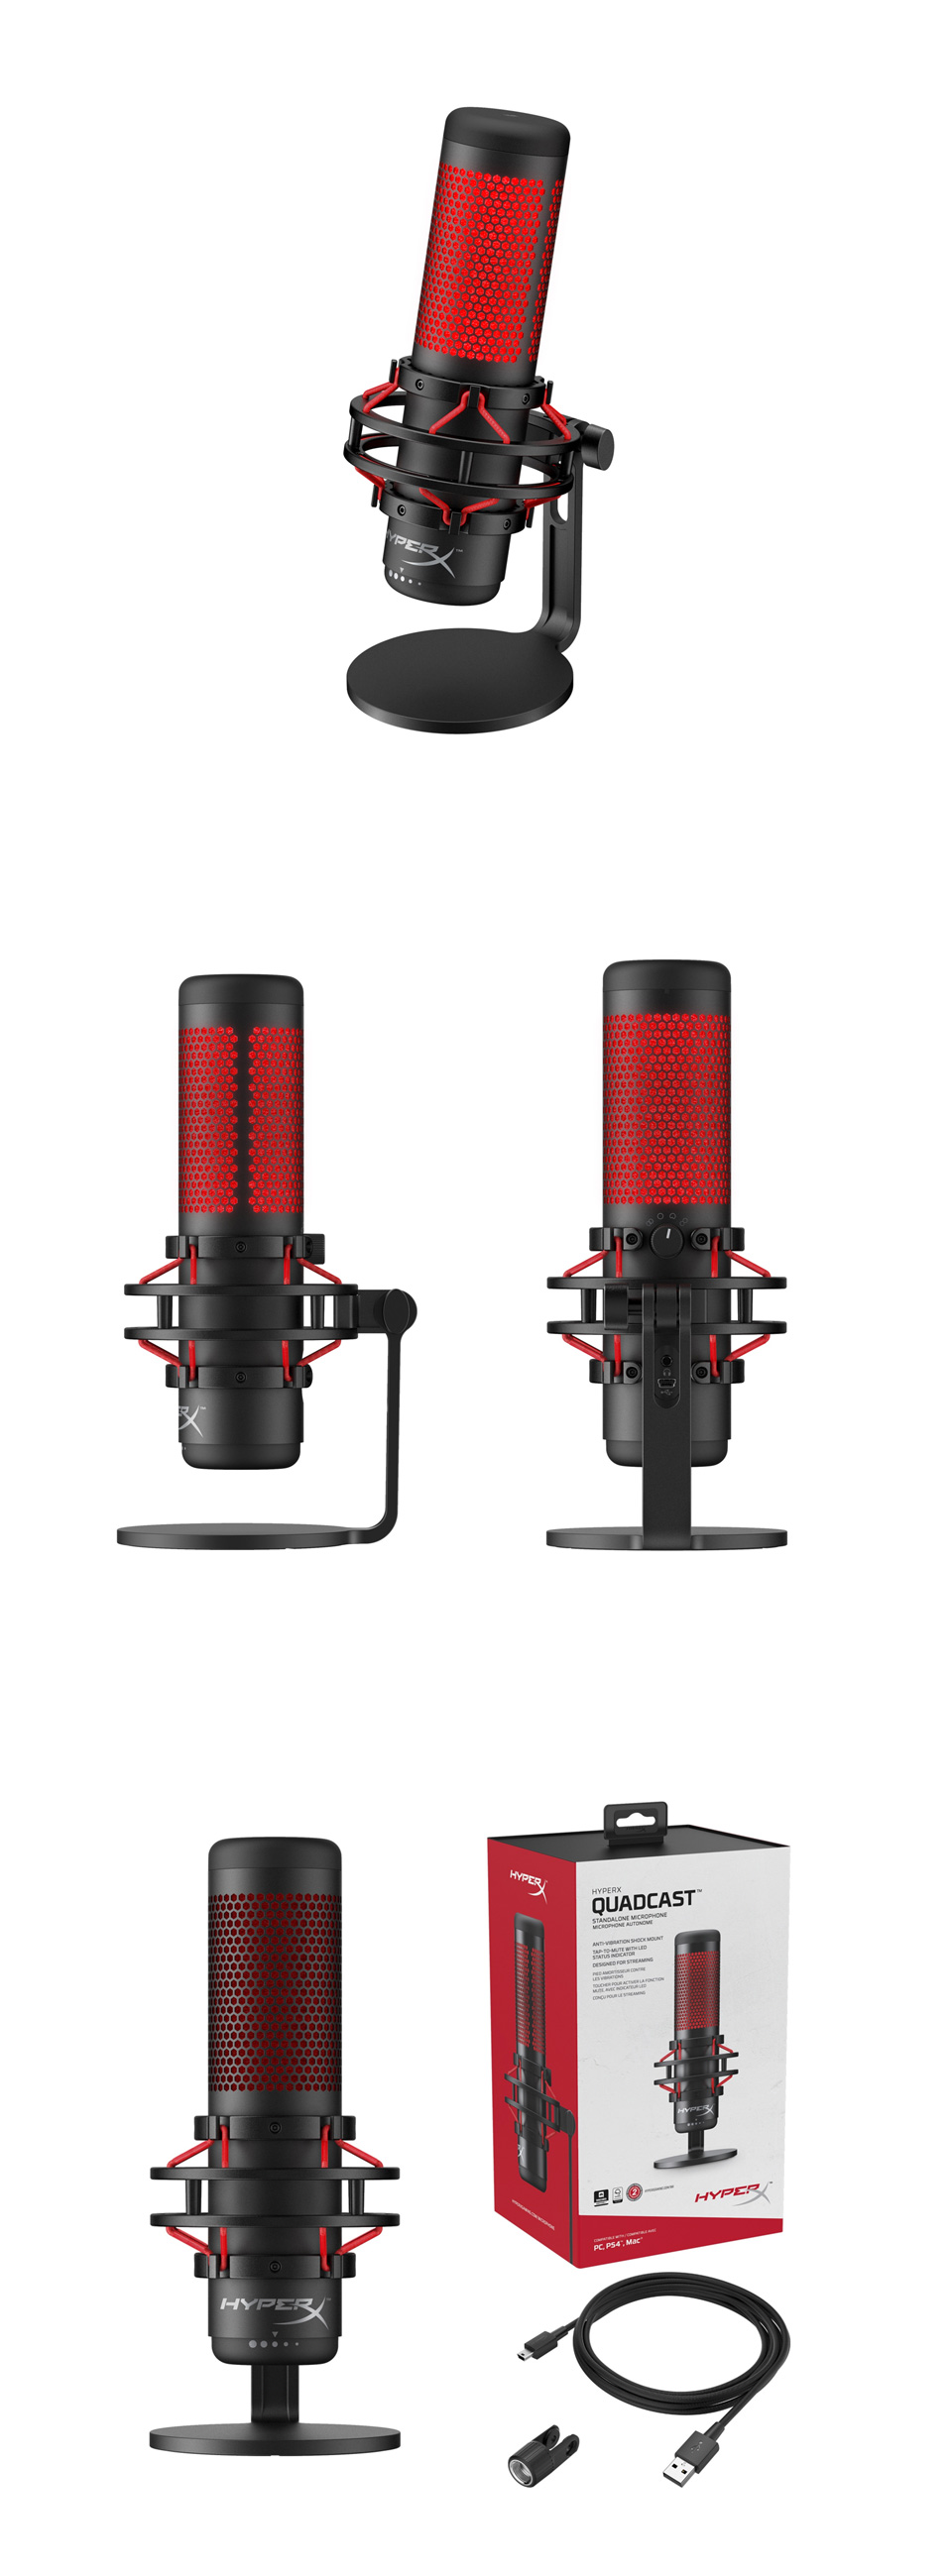 HyperX QuadCast Microphone product